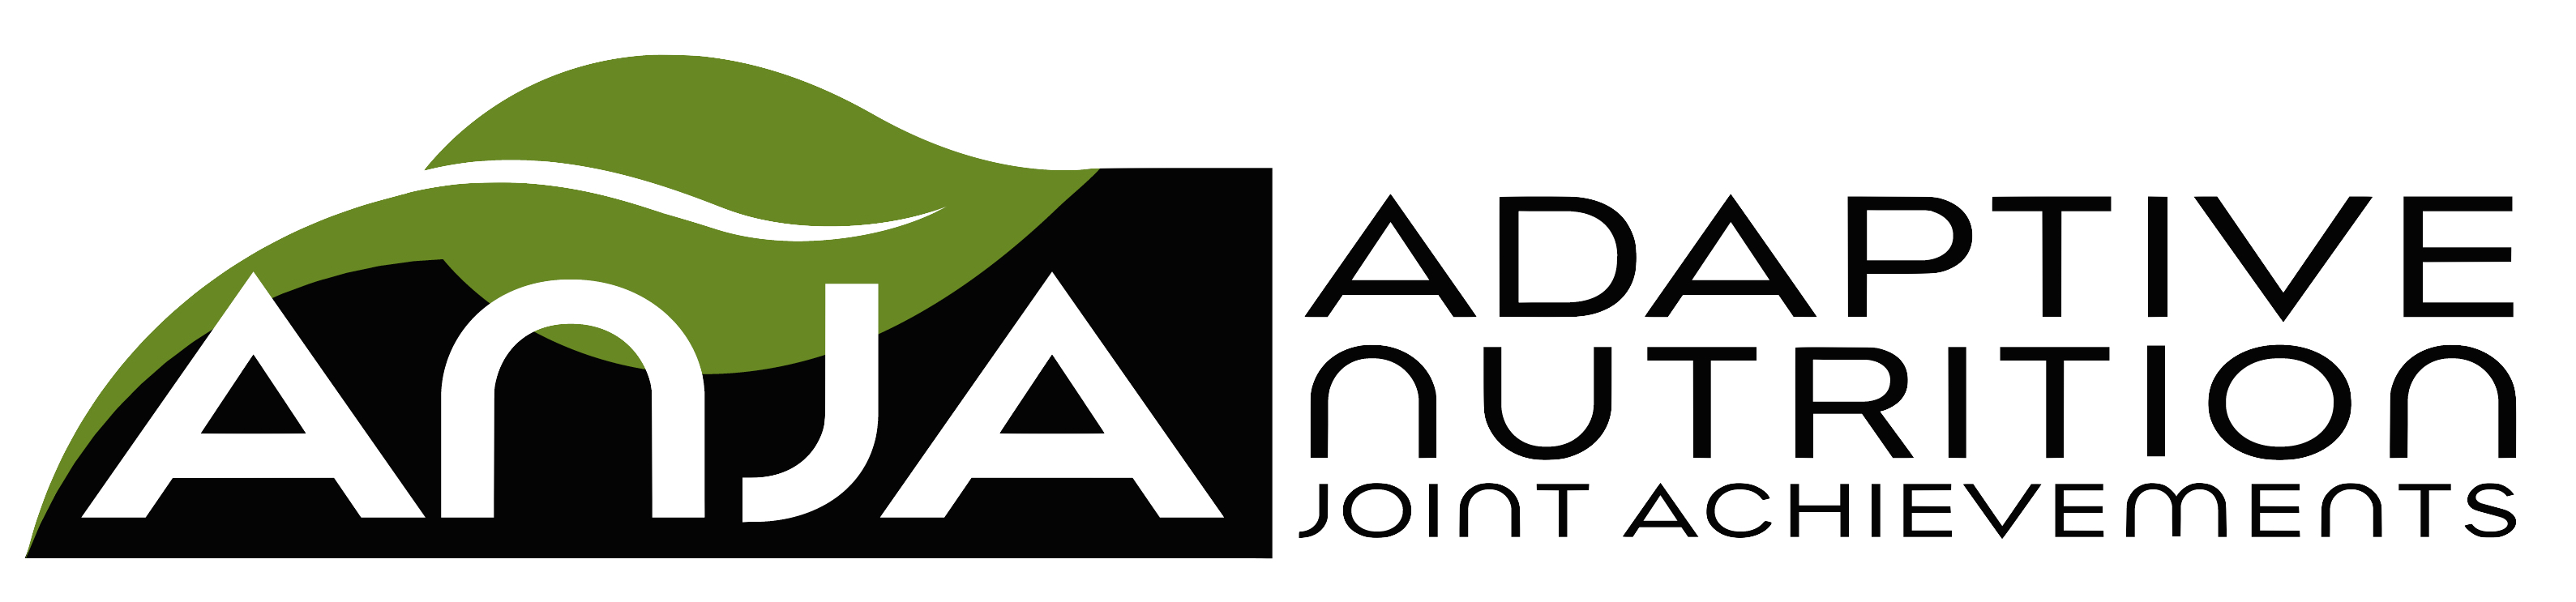 ALOHAS ECO-Center ADAPTIVE NUTRITION JOINT ACHIEVEMENTS